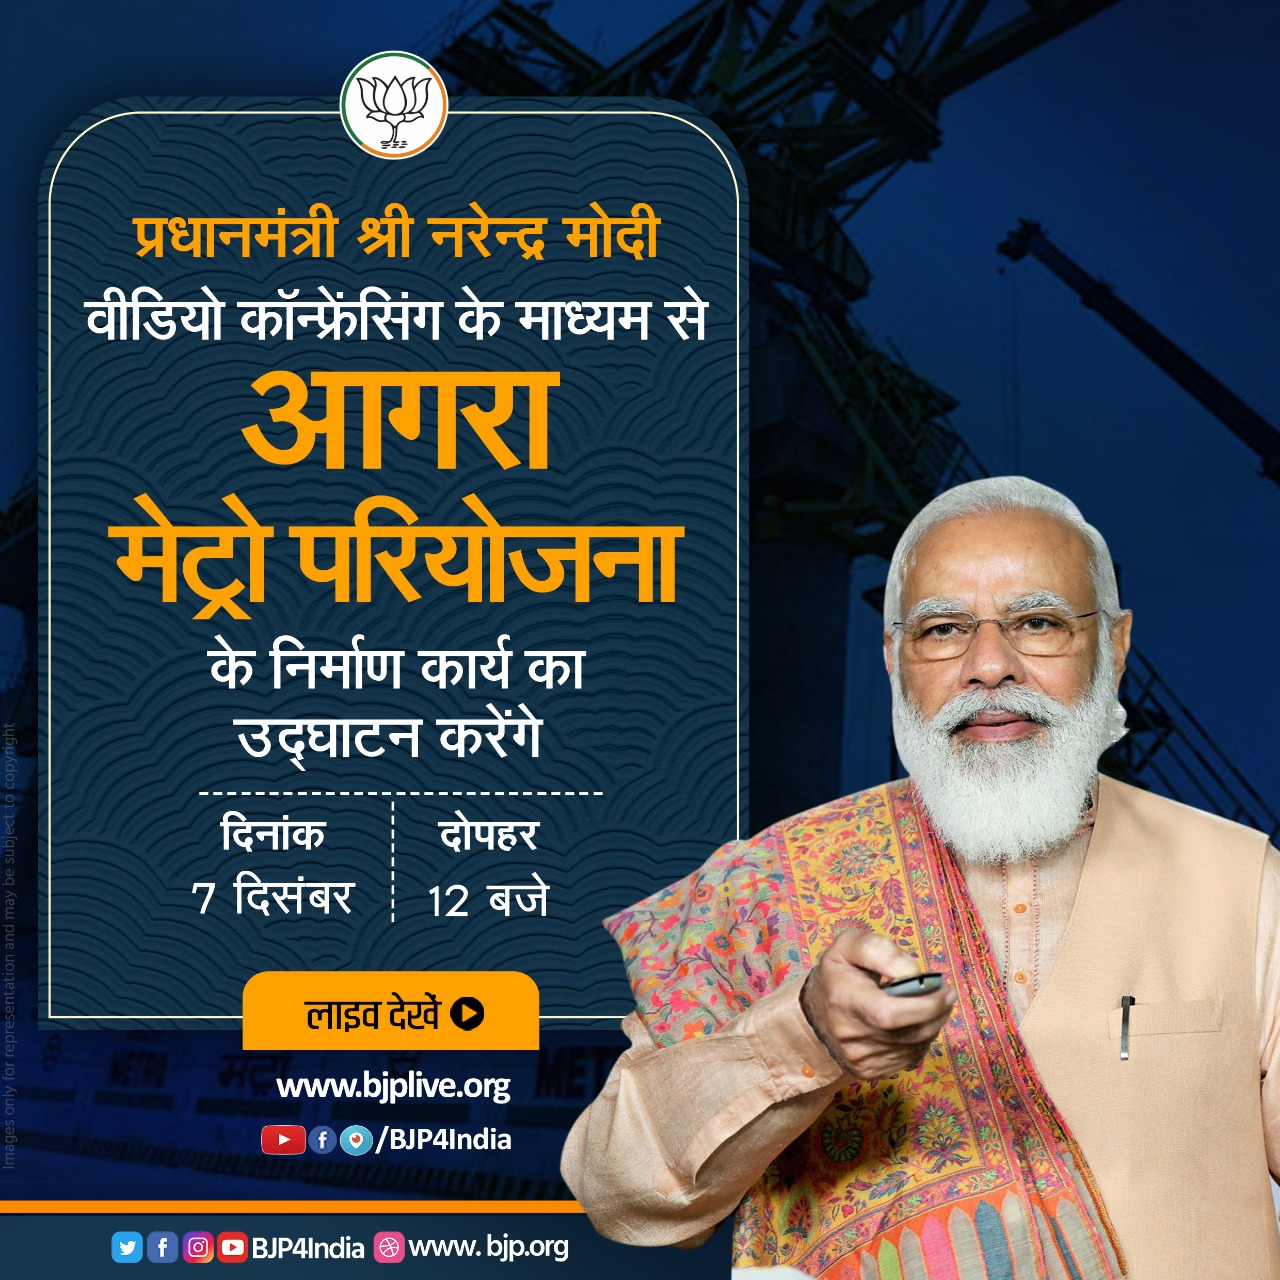 PM Modi to inaugurate construction work of Agra Metro Project today via Video Conferencing